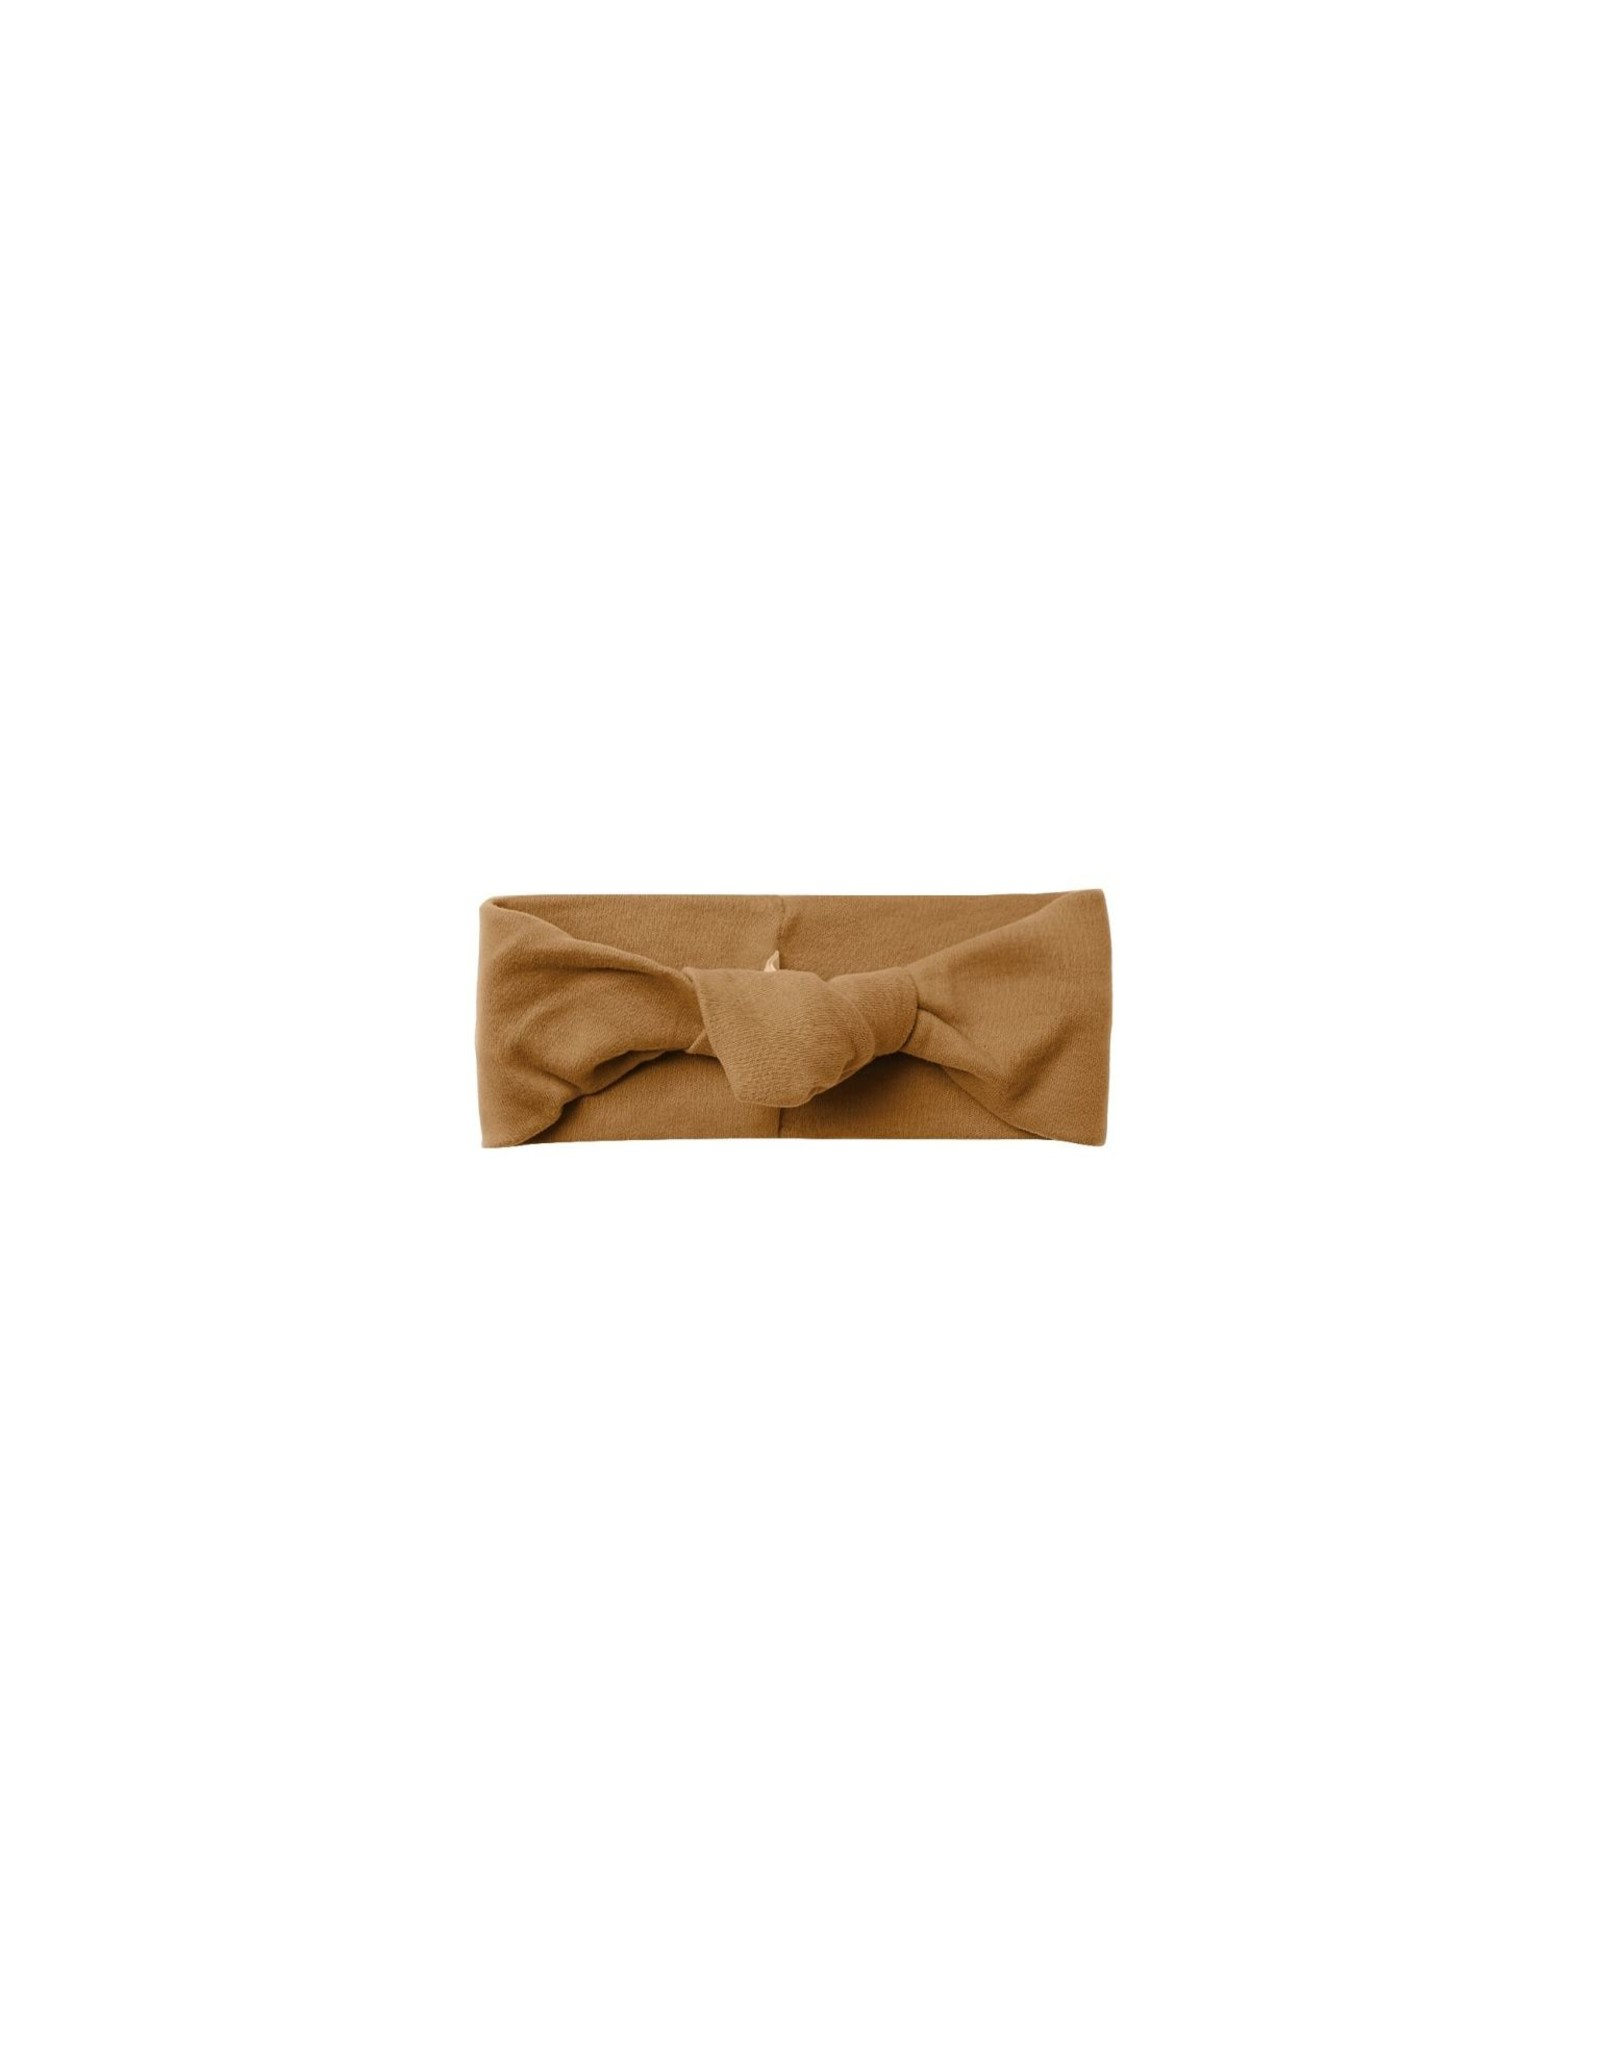 Quincy Mae knotted hb- walnut